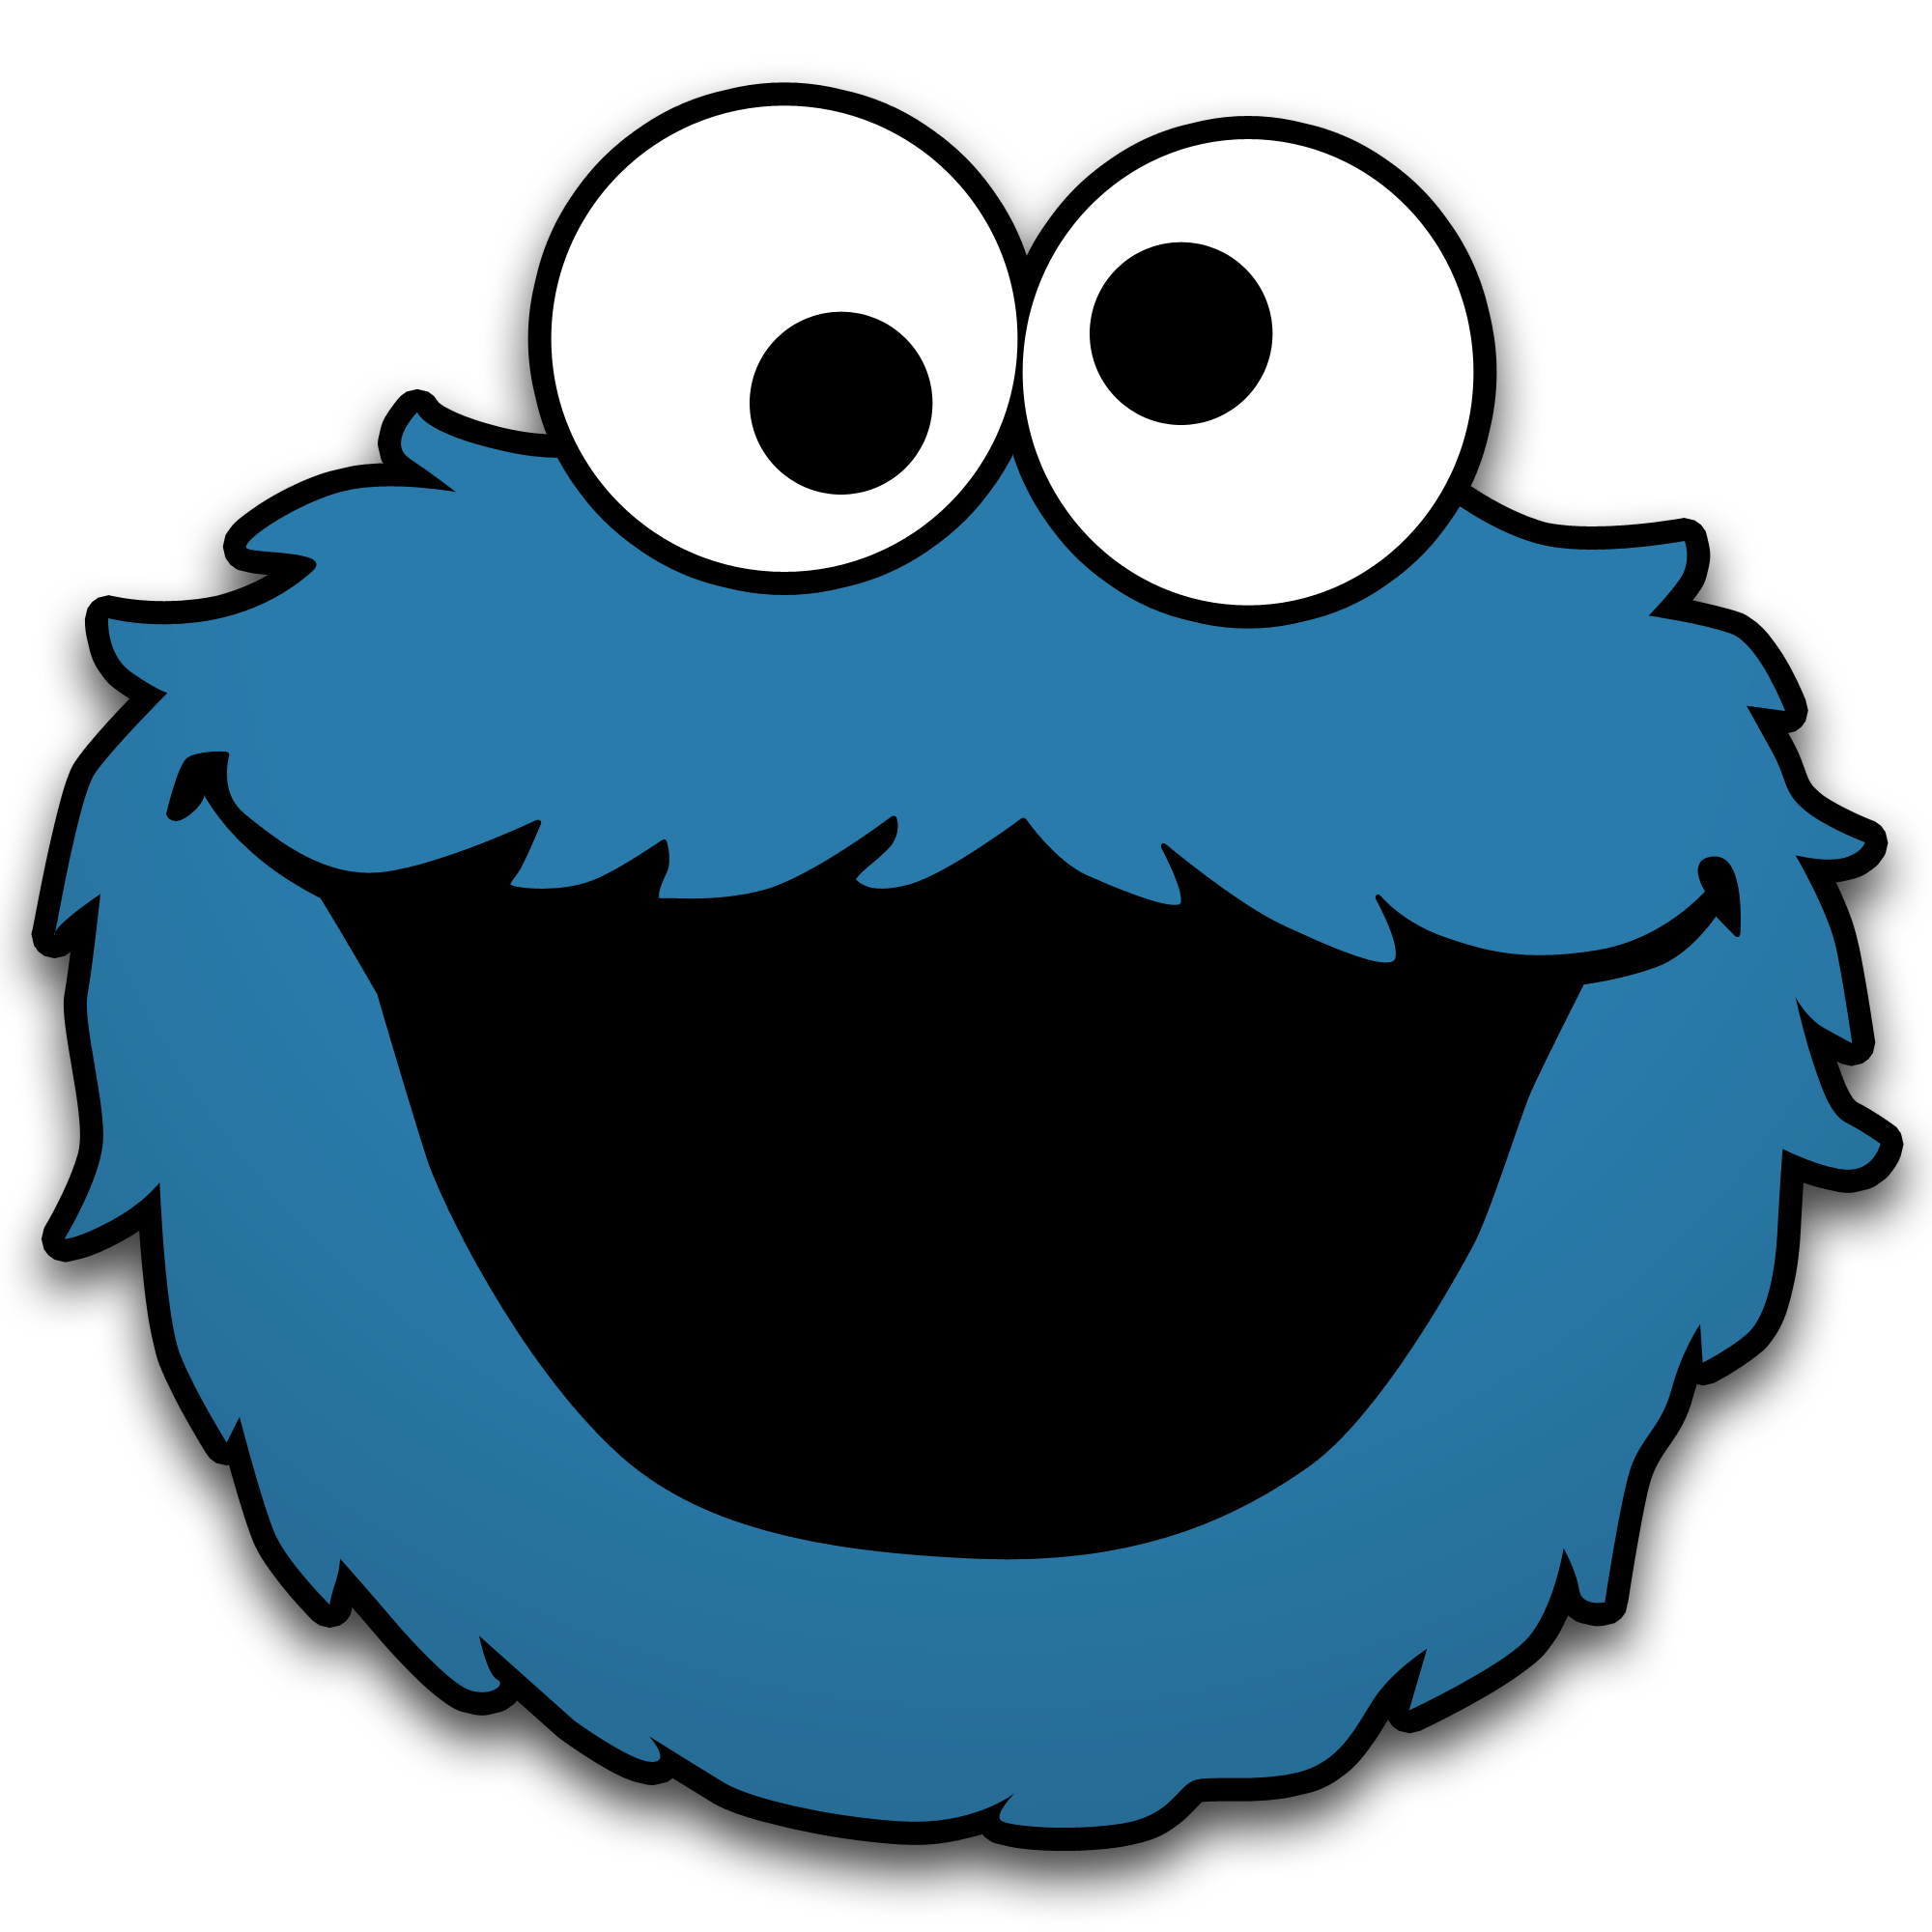 Fishbowl clipart container. Cookie monster by neorame